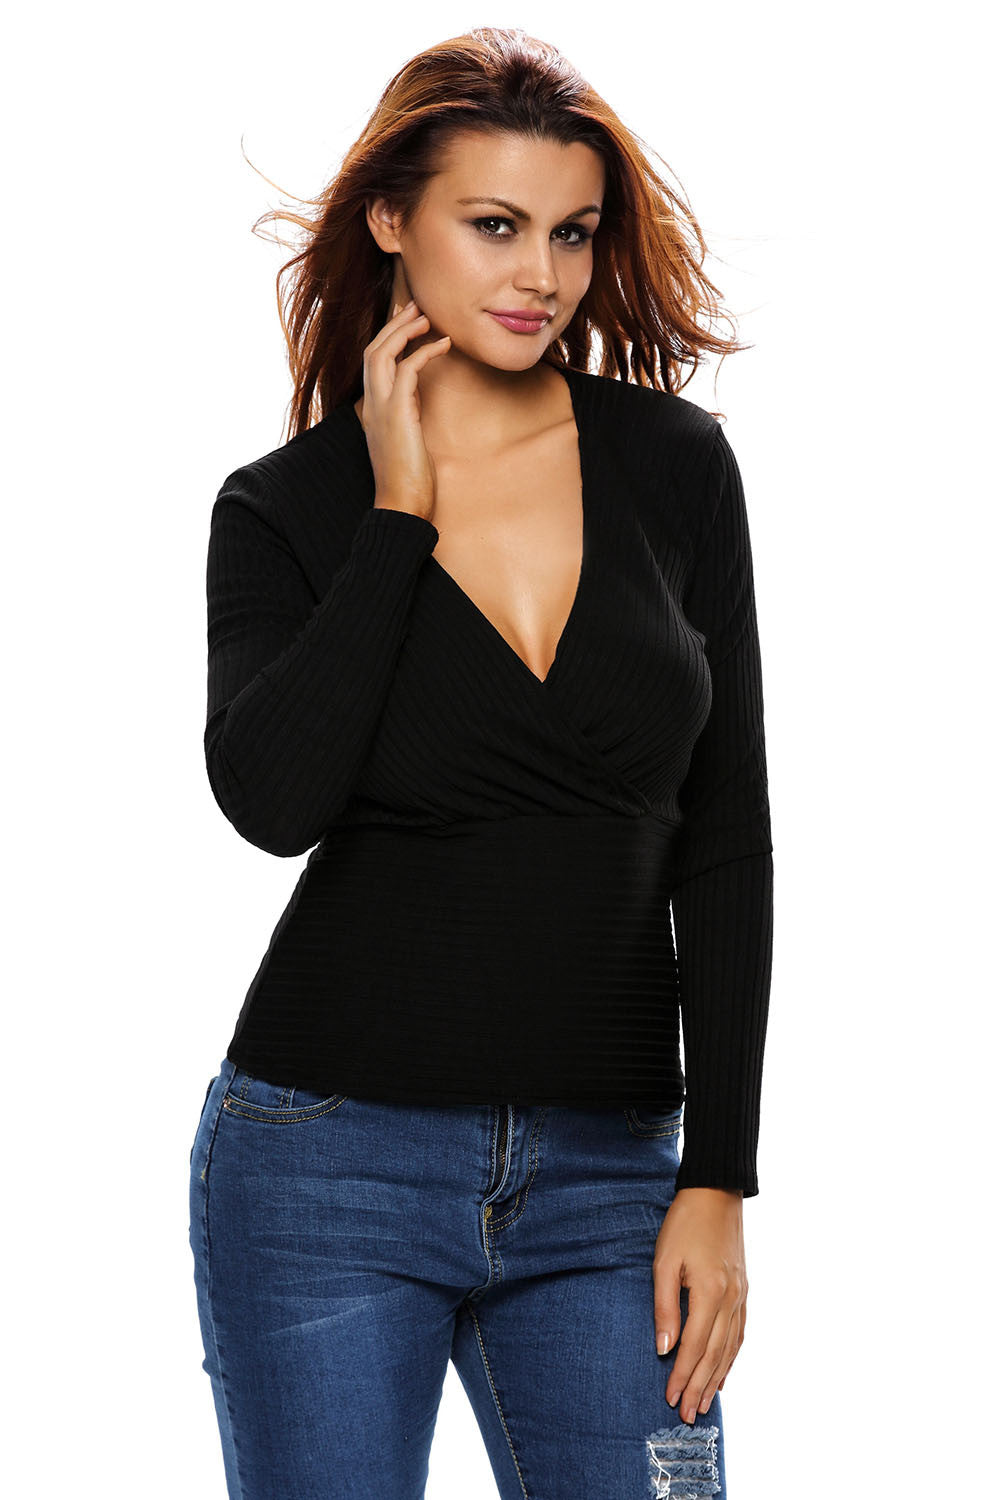 Black Sexy Crop Plunging Cross V Neck Stretch Knitwear Top